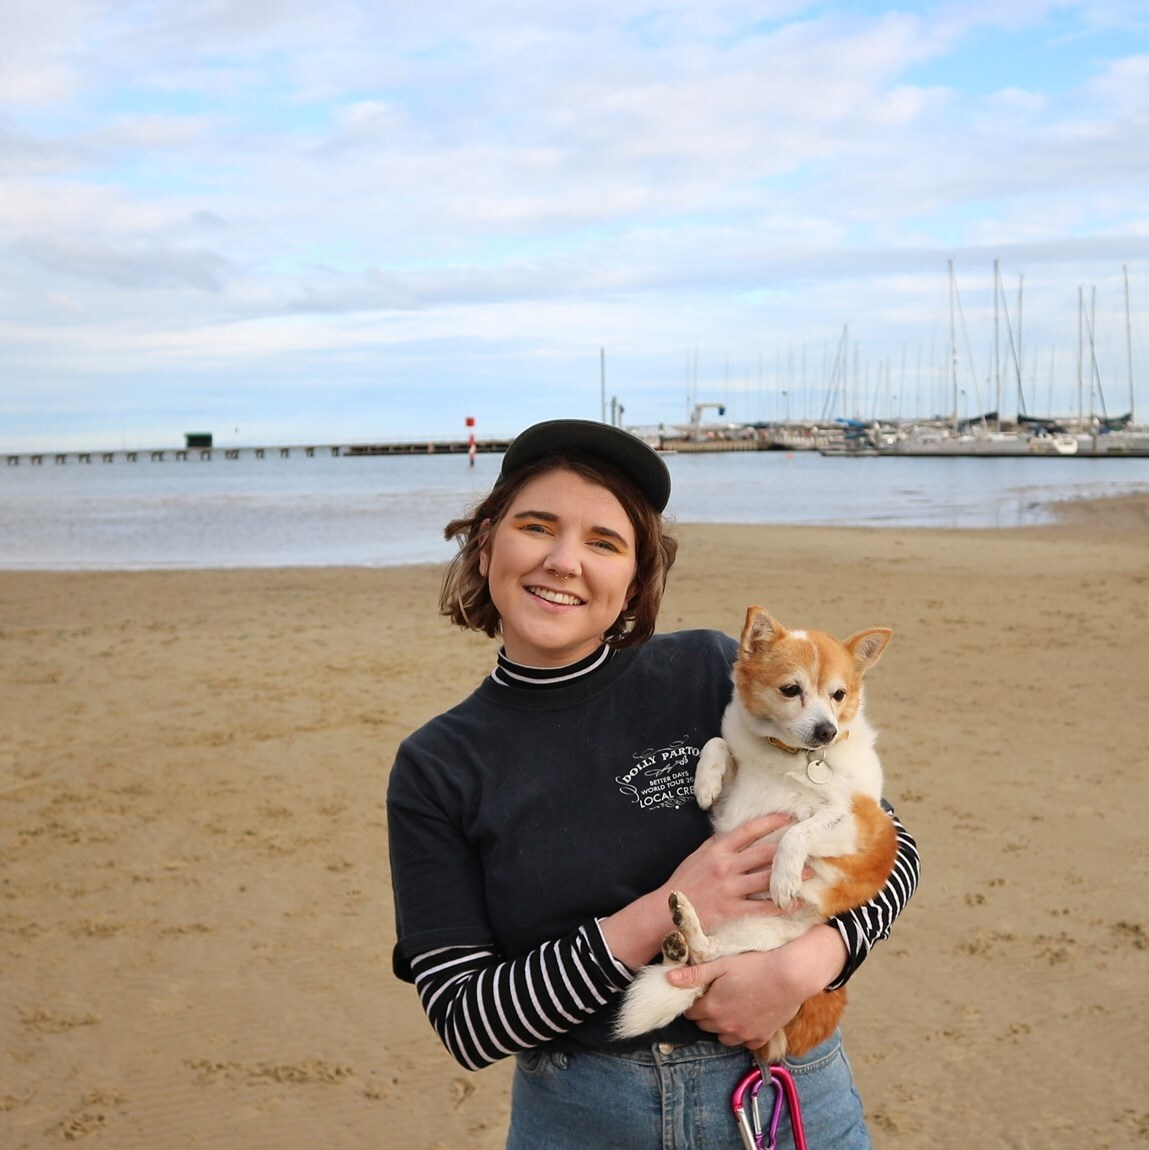 Dani is weatring a black Dolley Parton tshirt and wearing a black cap. They are standing on the beach., holding their dog Foxy and smiling at the camera.